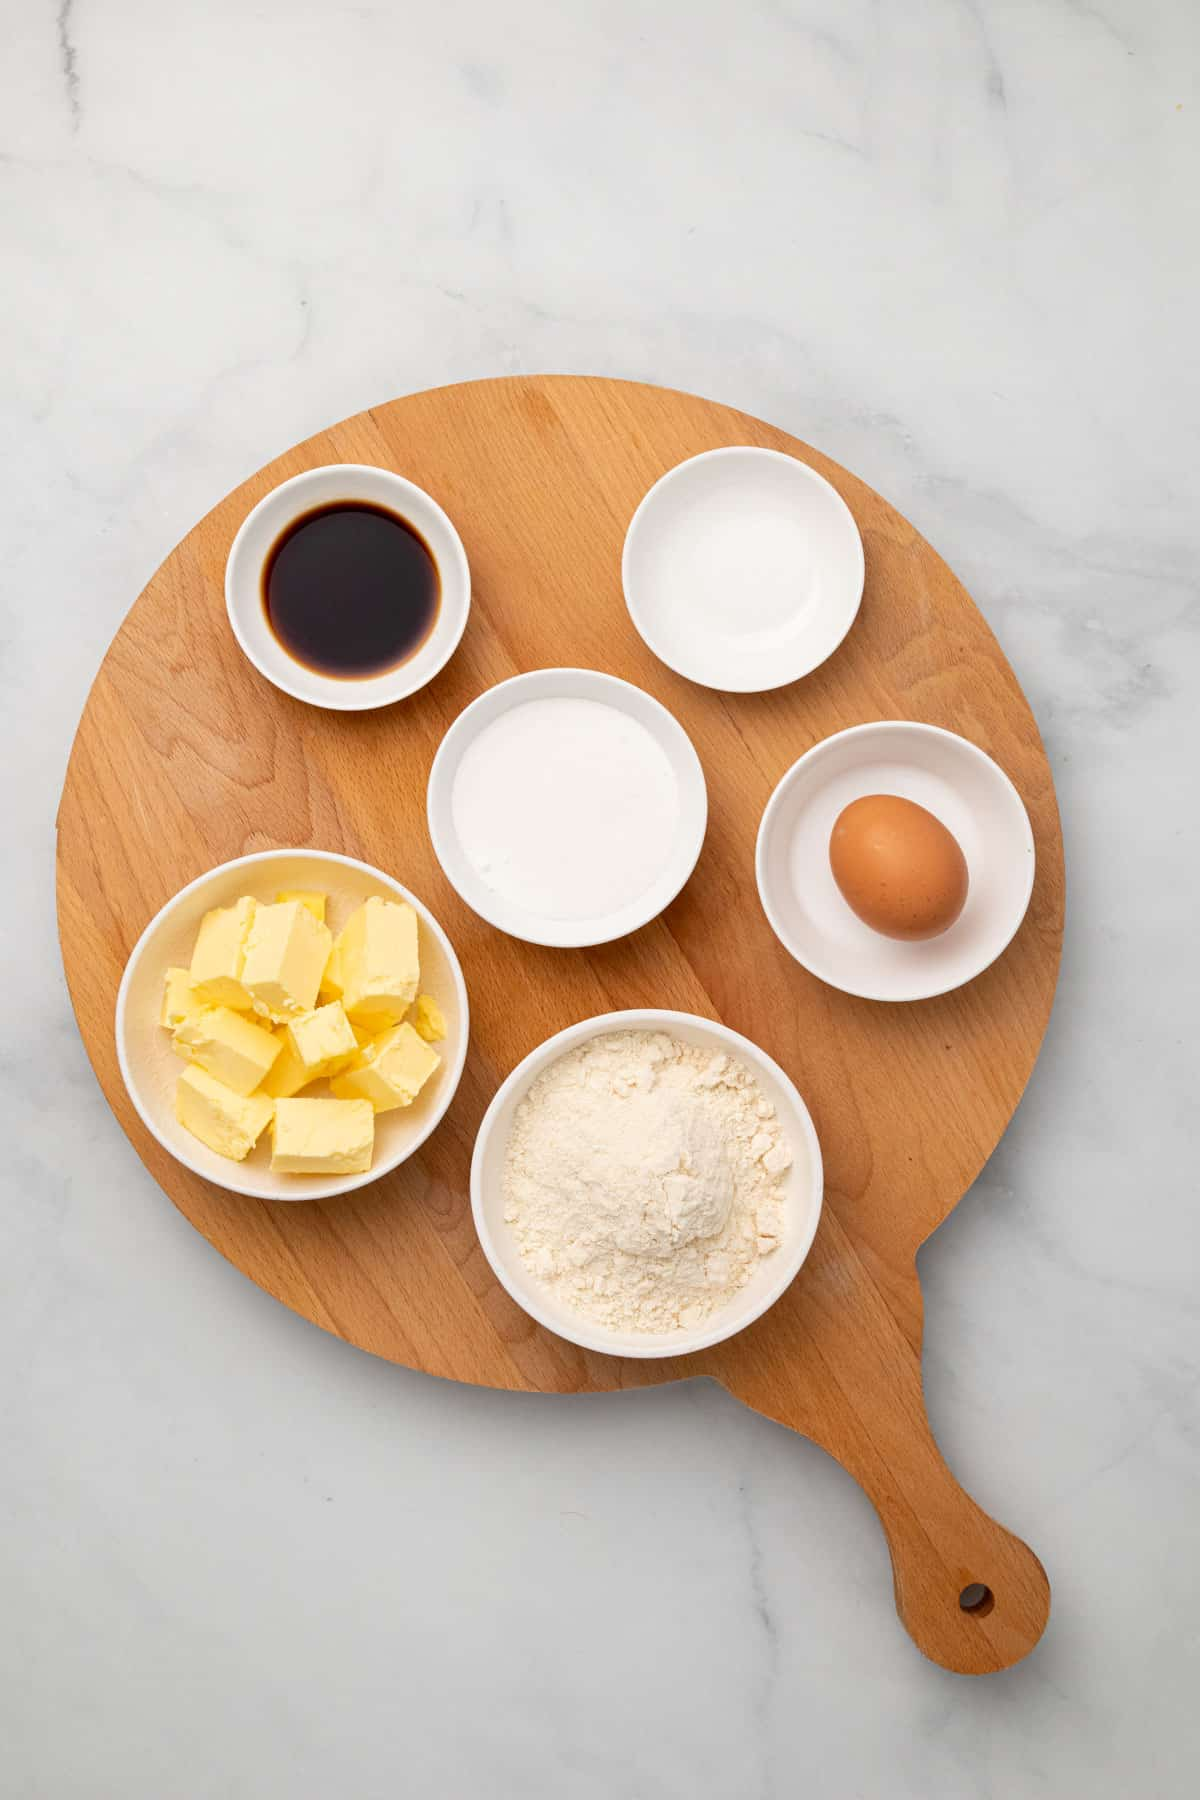 Ingredients for the lemon bars on wooden board